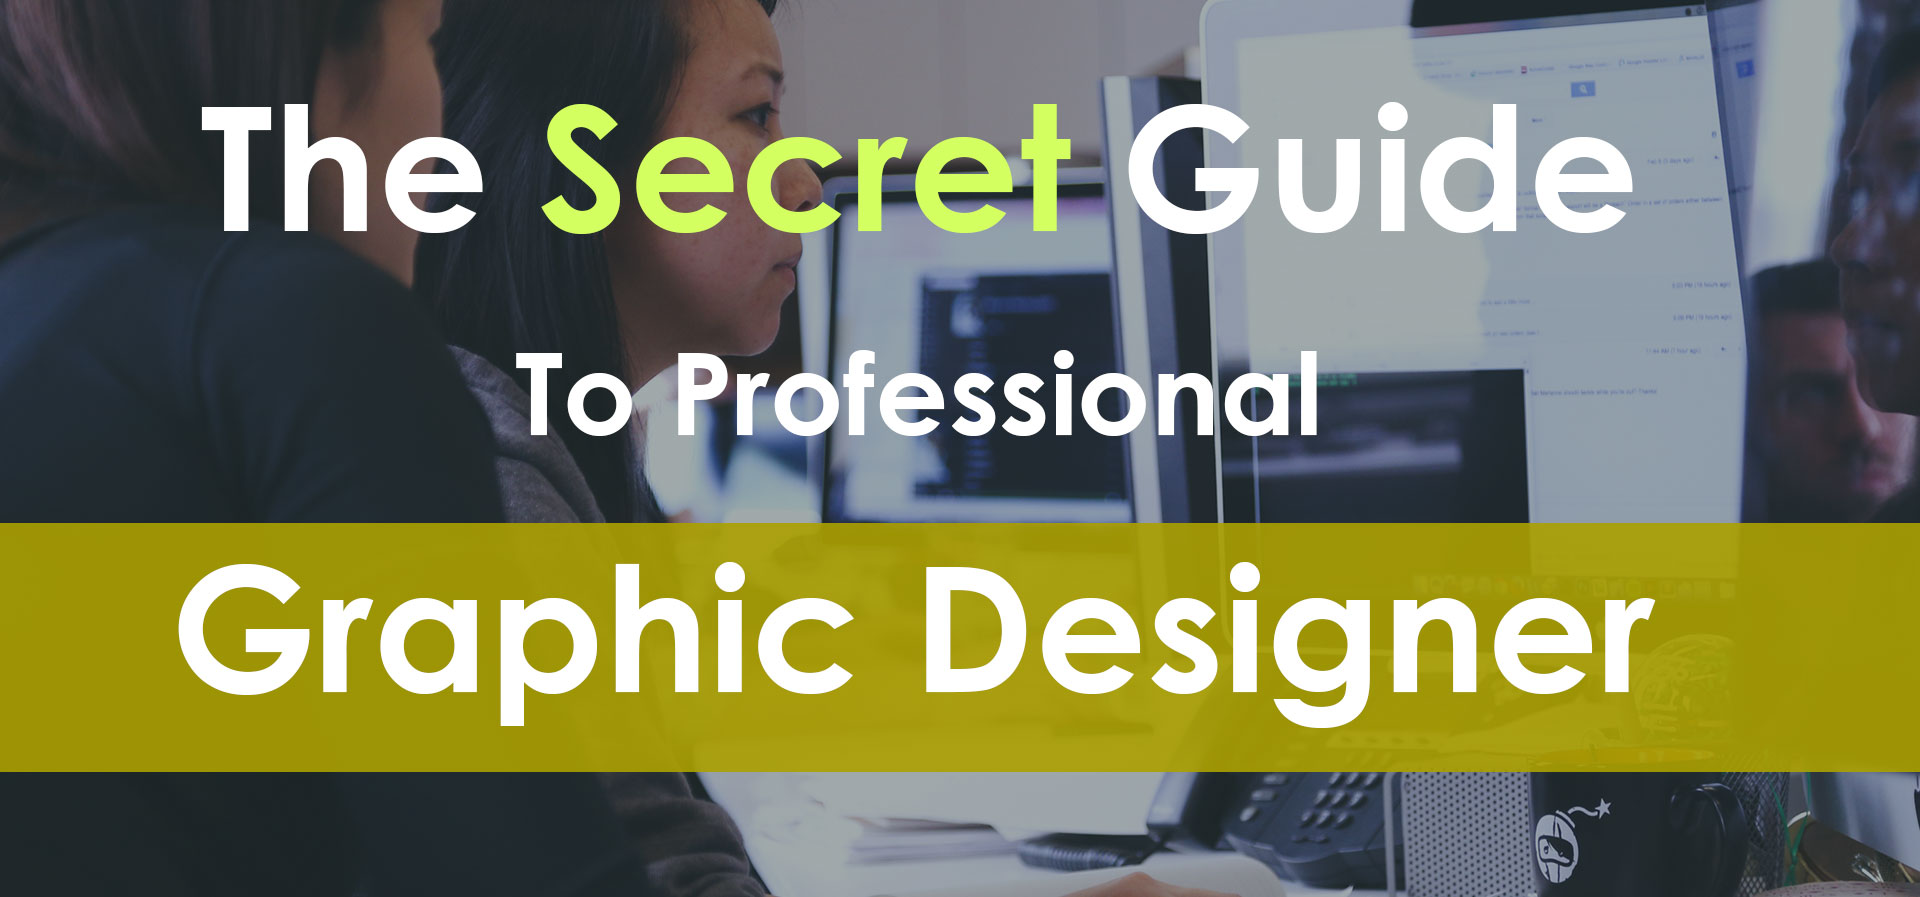 The-Secret-Guide-To-Professional-Graphic-Designer